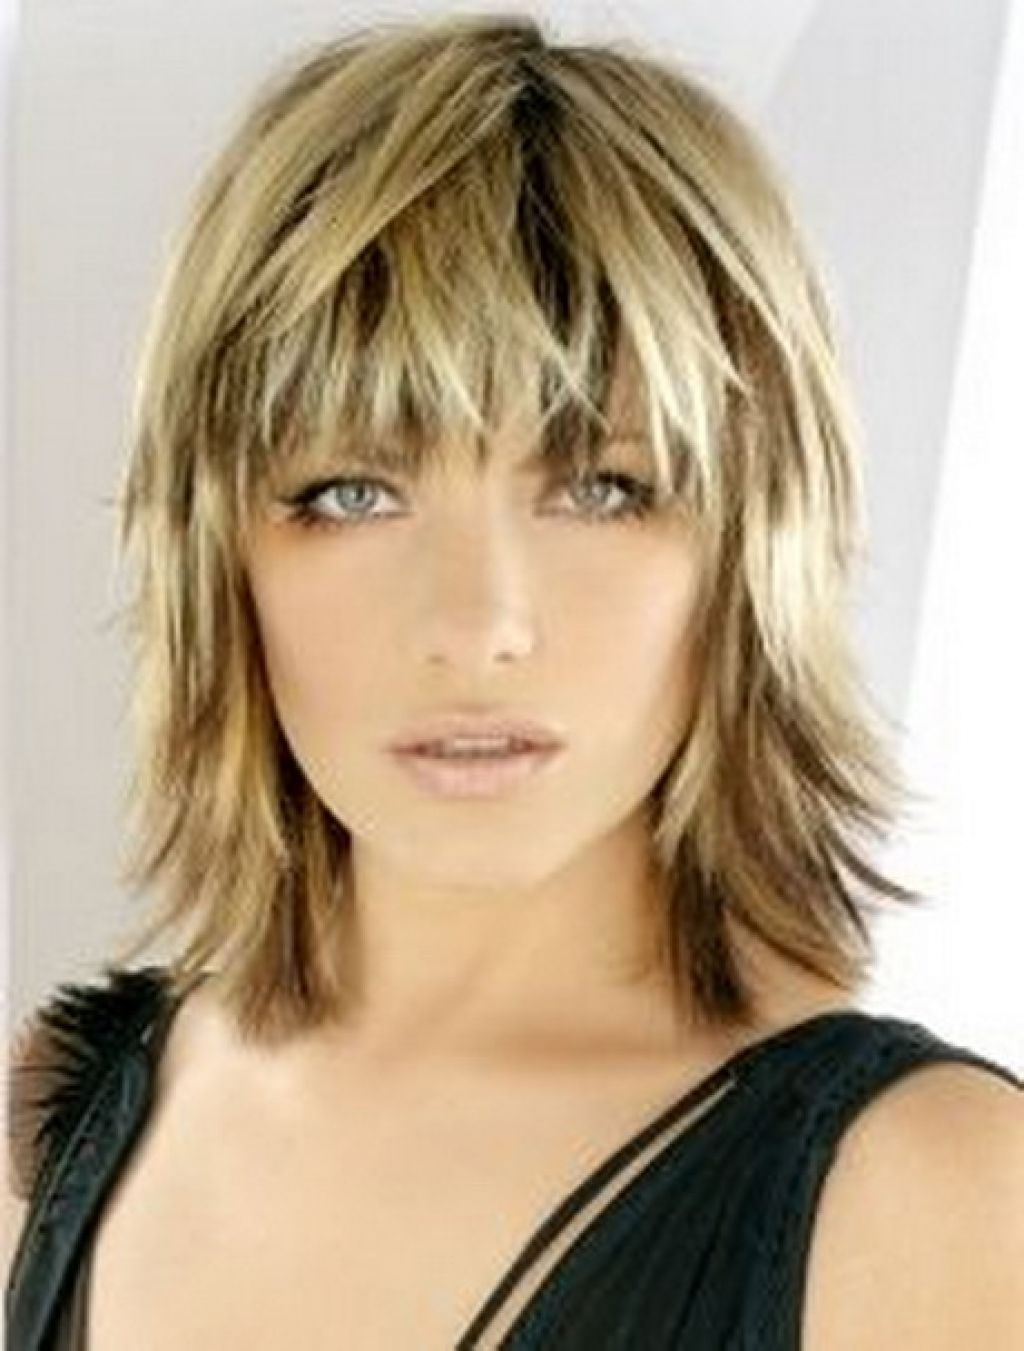 Shag Hairstyles Blonde Medium Length Choppy Shag Haircut With Wispy Bangs And Dark